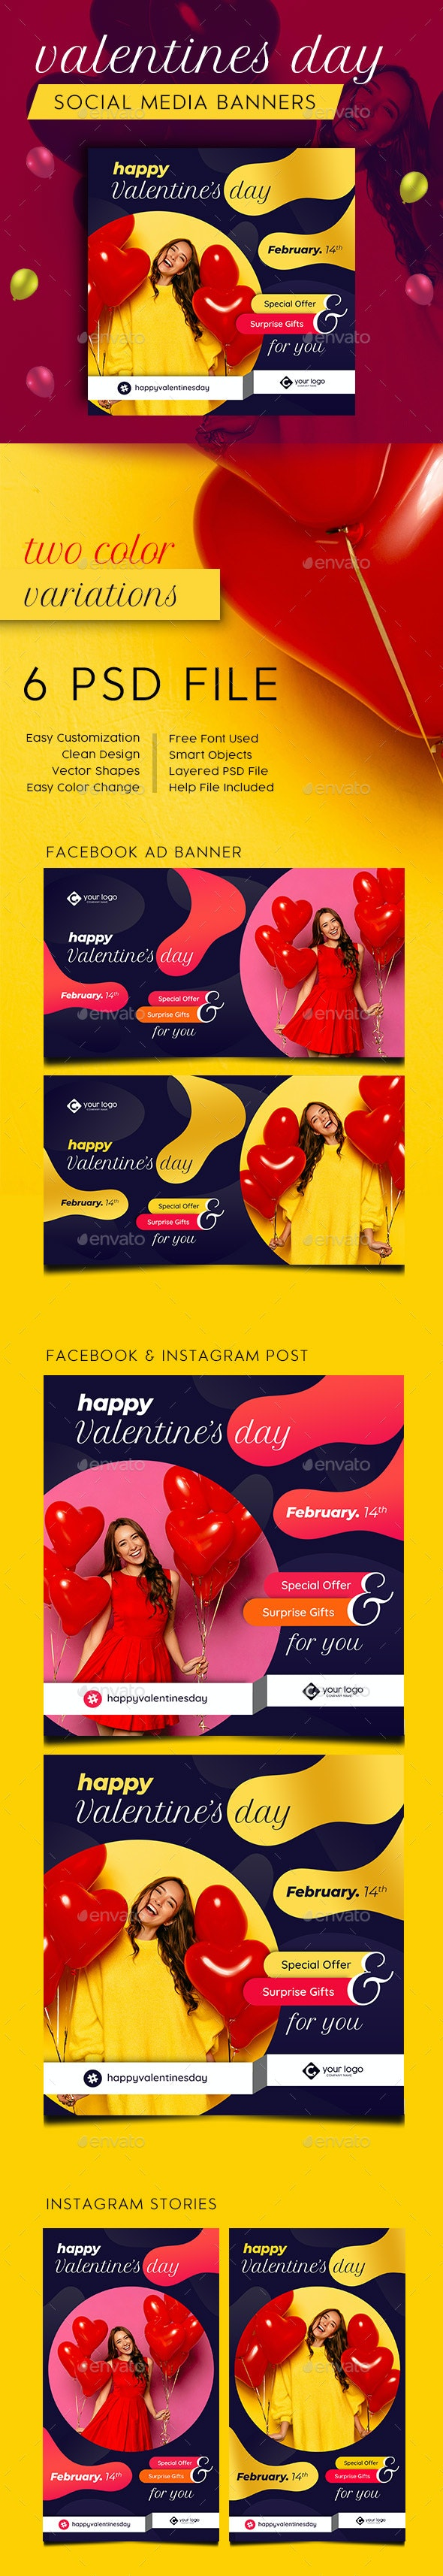 Valentines Day Facebook and Instagram Banner Set - Social Media Web Elements